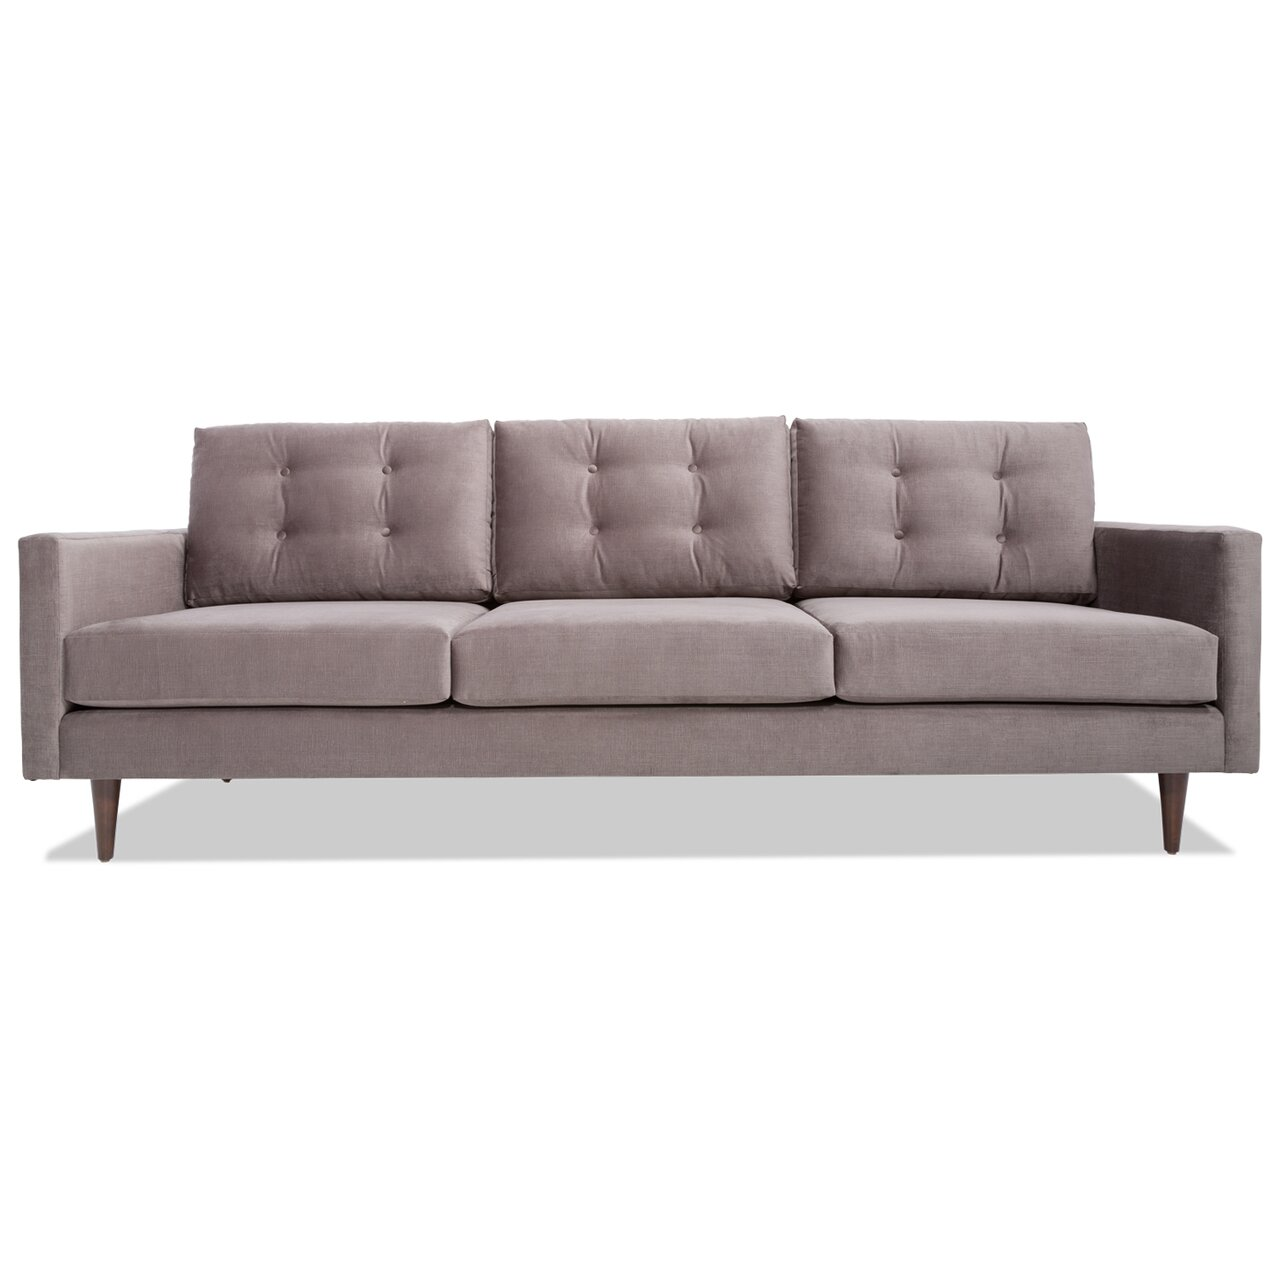 Danish modern sleeper sofa danish mid century modern back for Modern loveseat